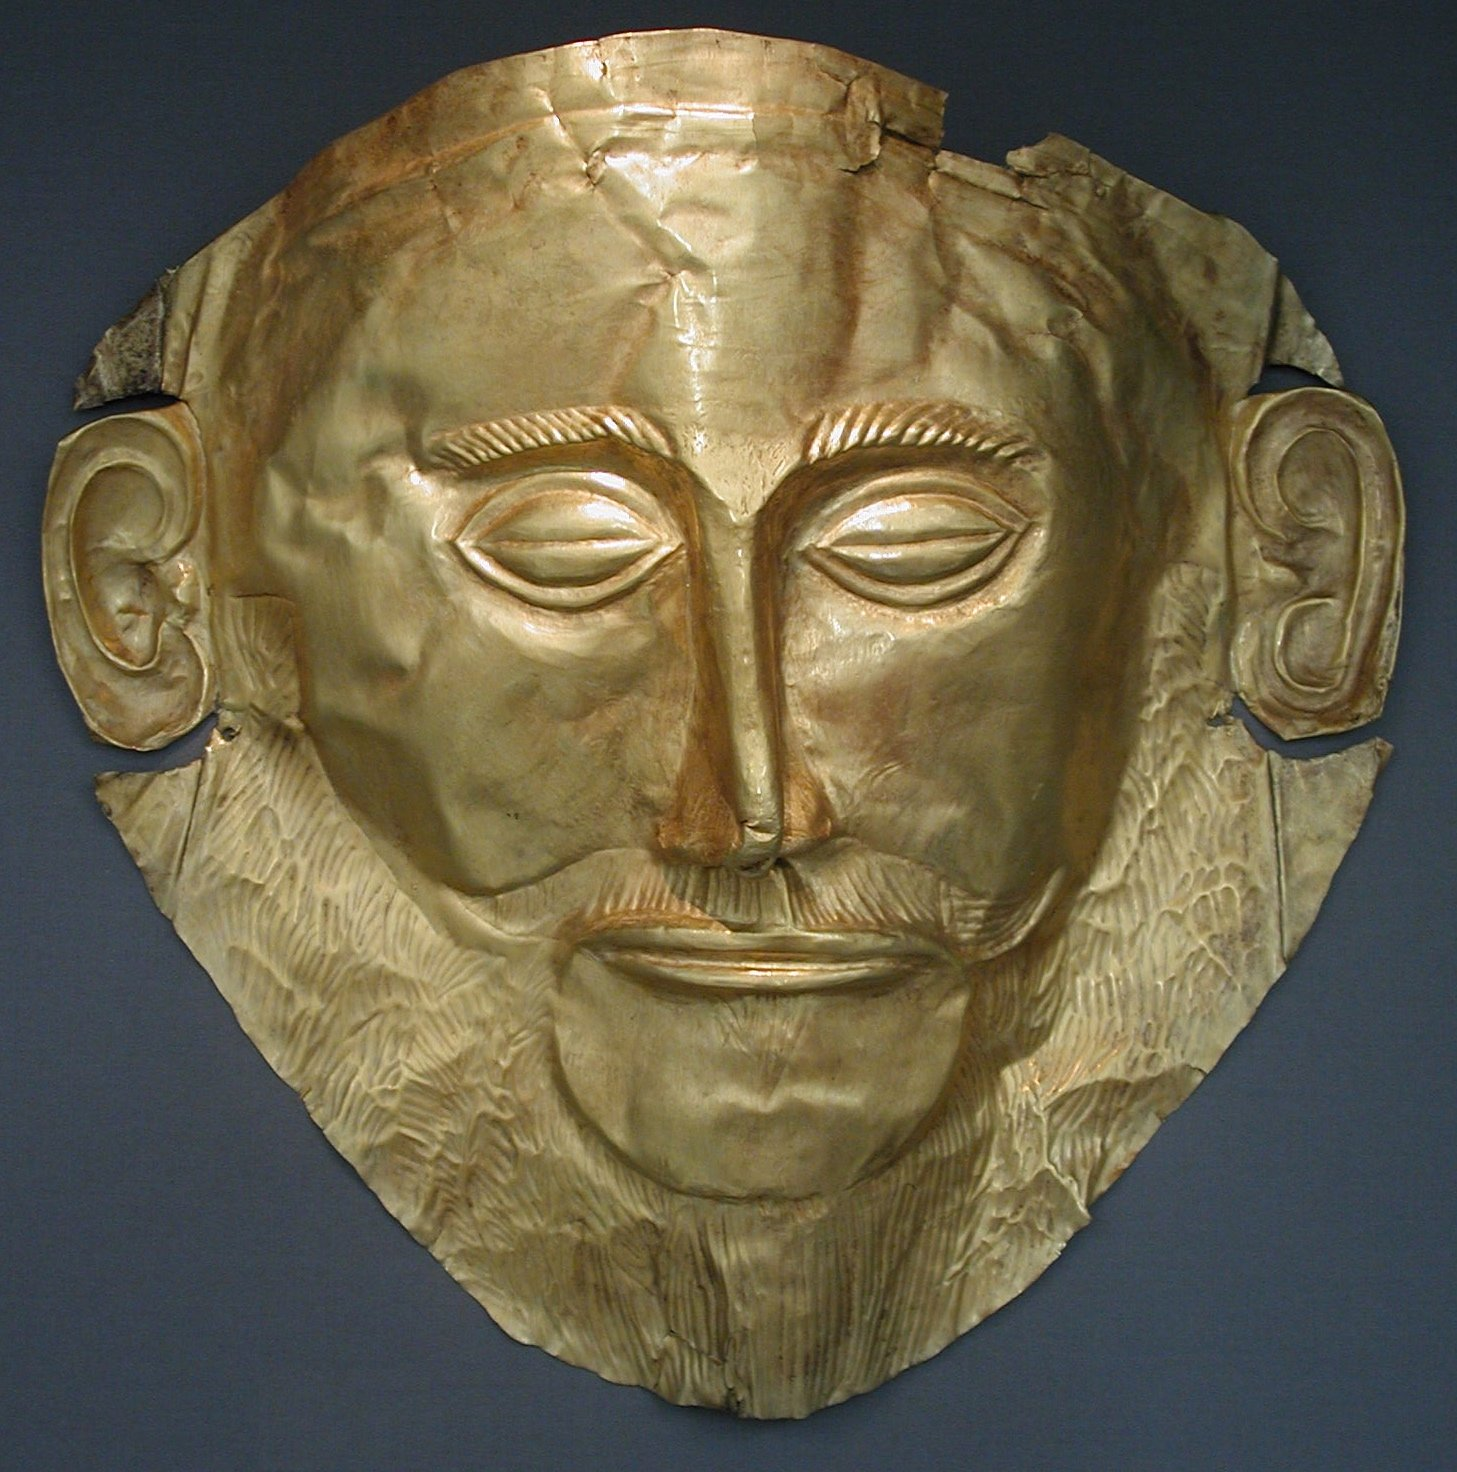 http://upload.wikimedia.org/wikipedia/commons/3/34/MaskeAgamemnon.JPG